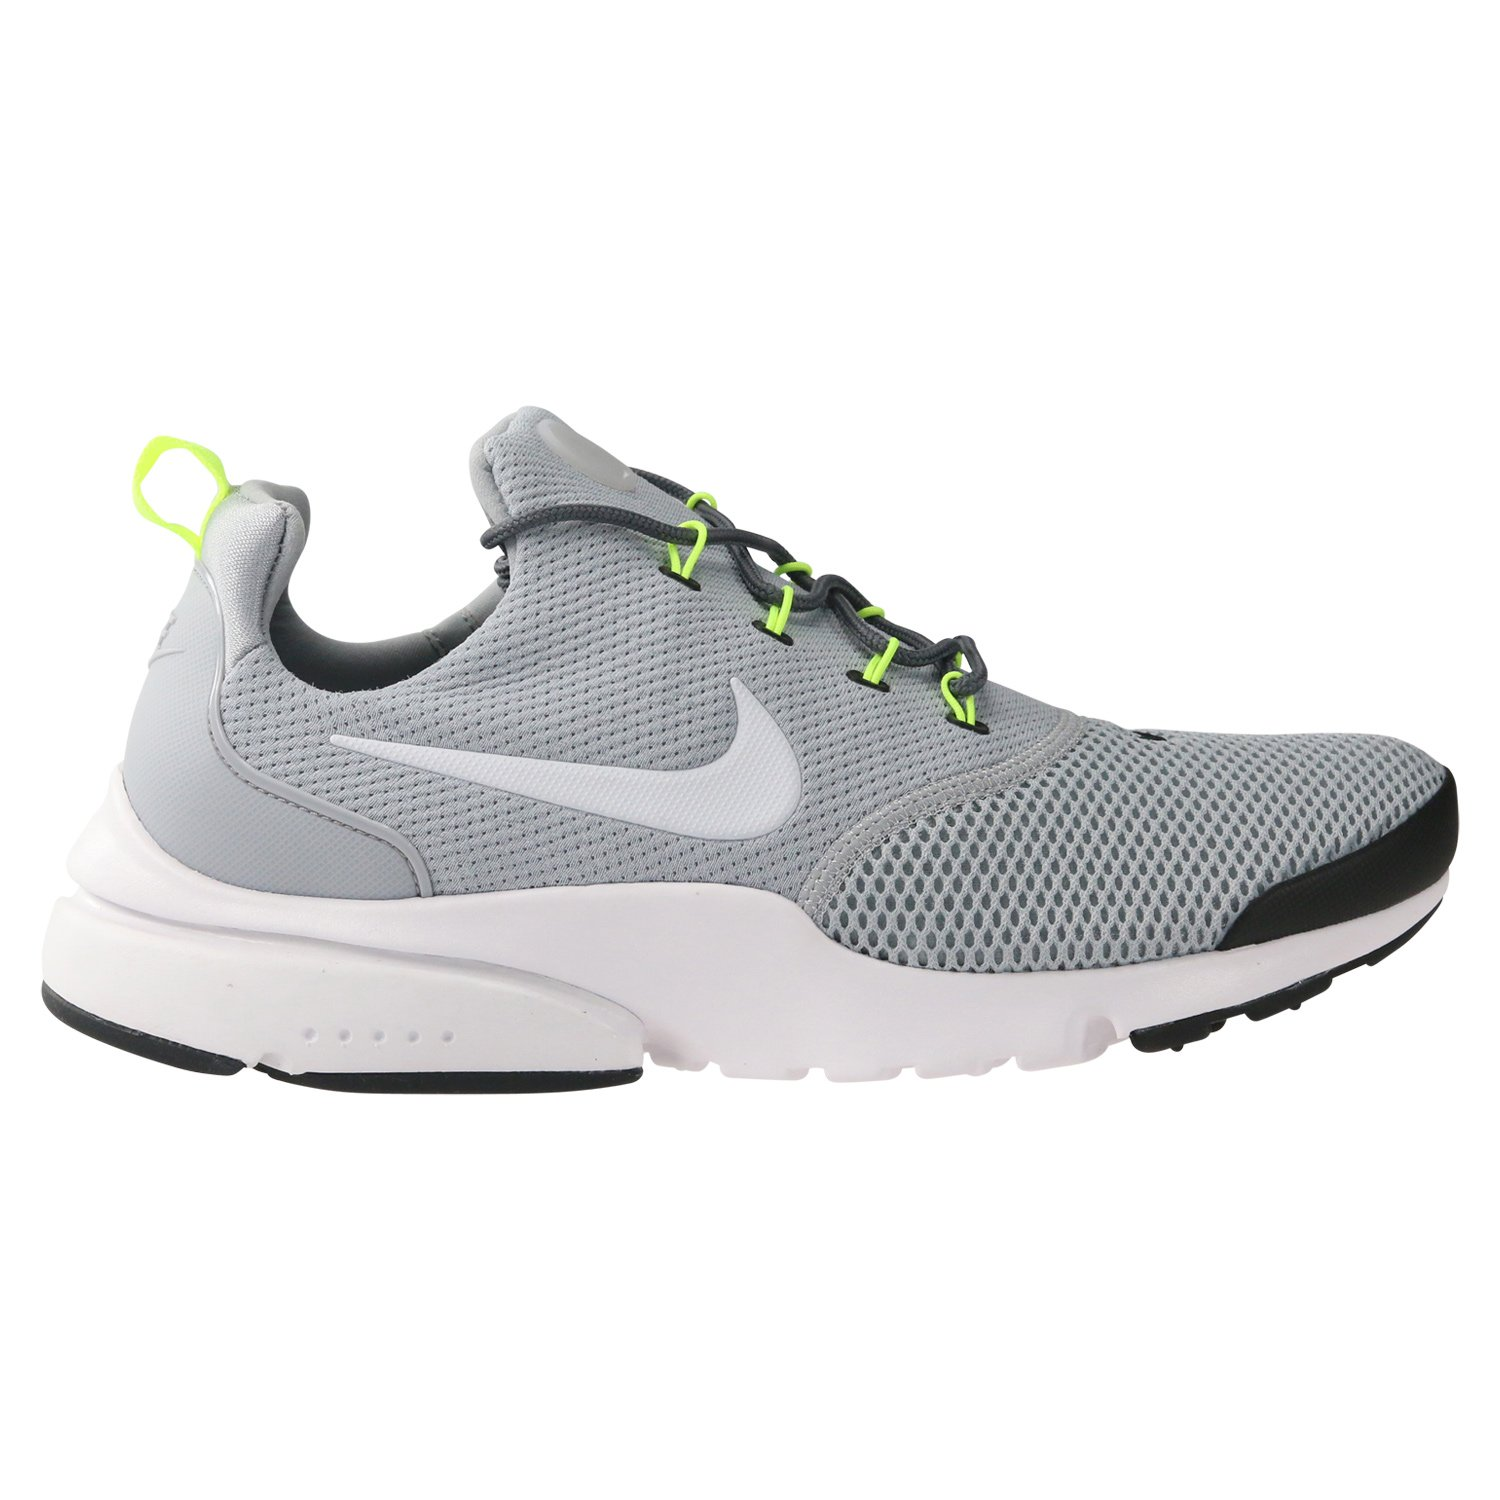 Nike Presto Fly Mens Running Trainers 908019 Sneakers Shoes (UK 11 US 12 EU 46, Wolf Grey White Black 013)